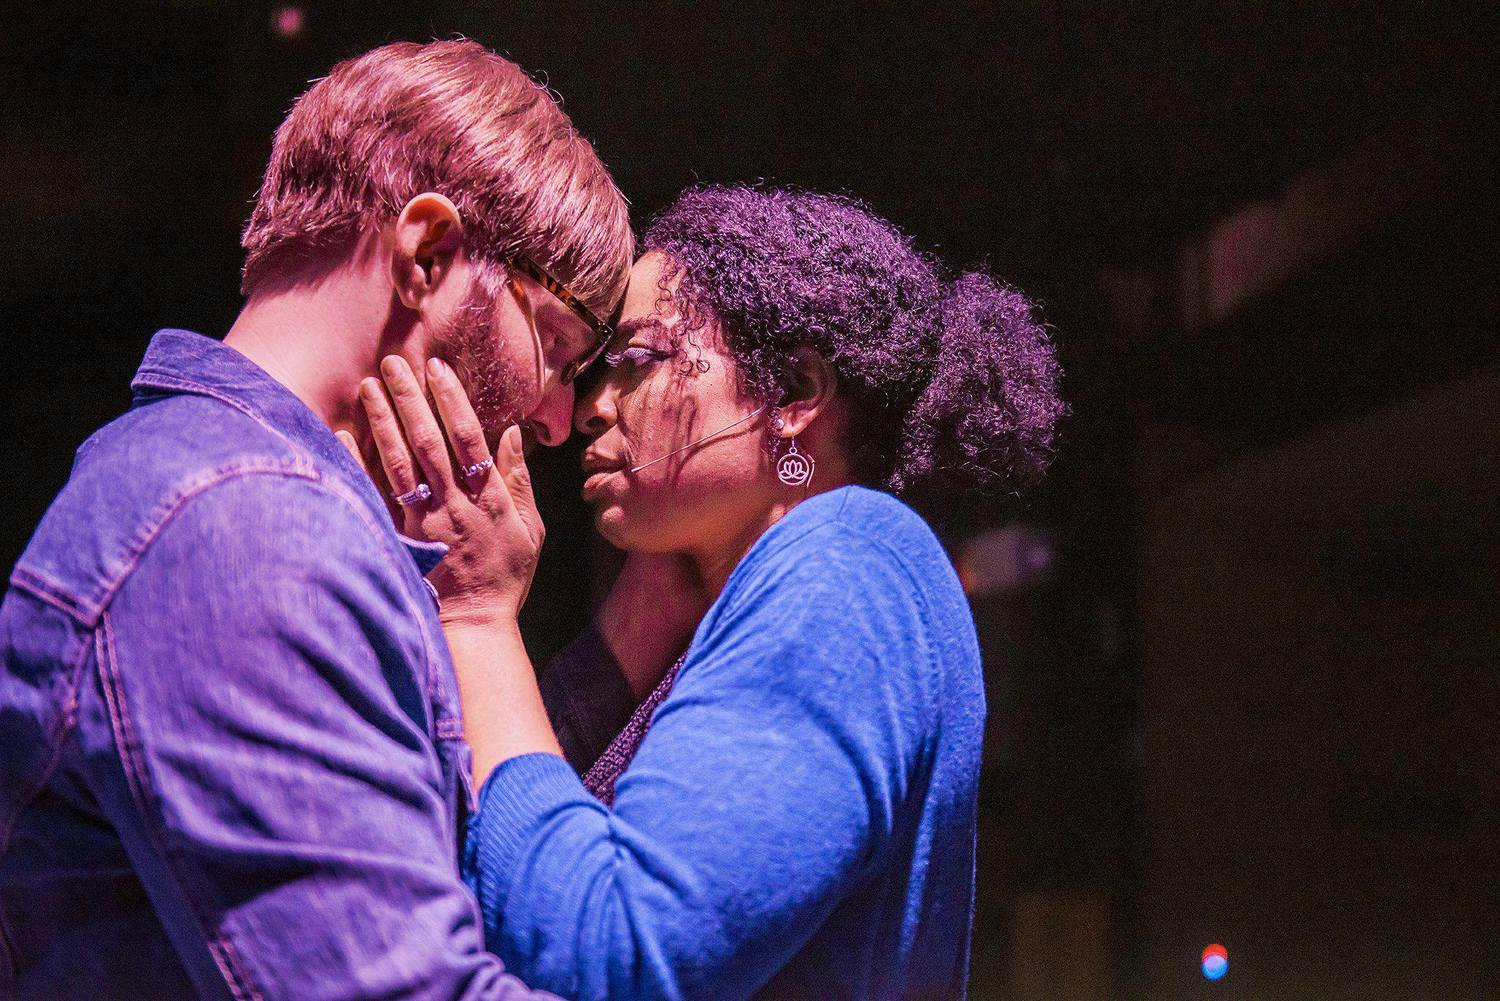 BWW Review: MURDER BALLAD at 5th Wall Theatre